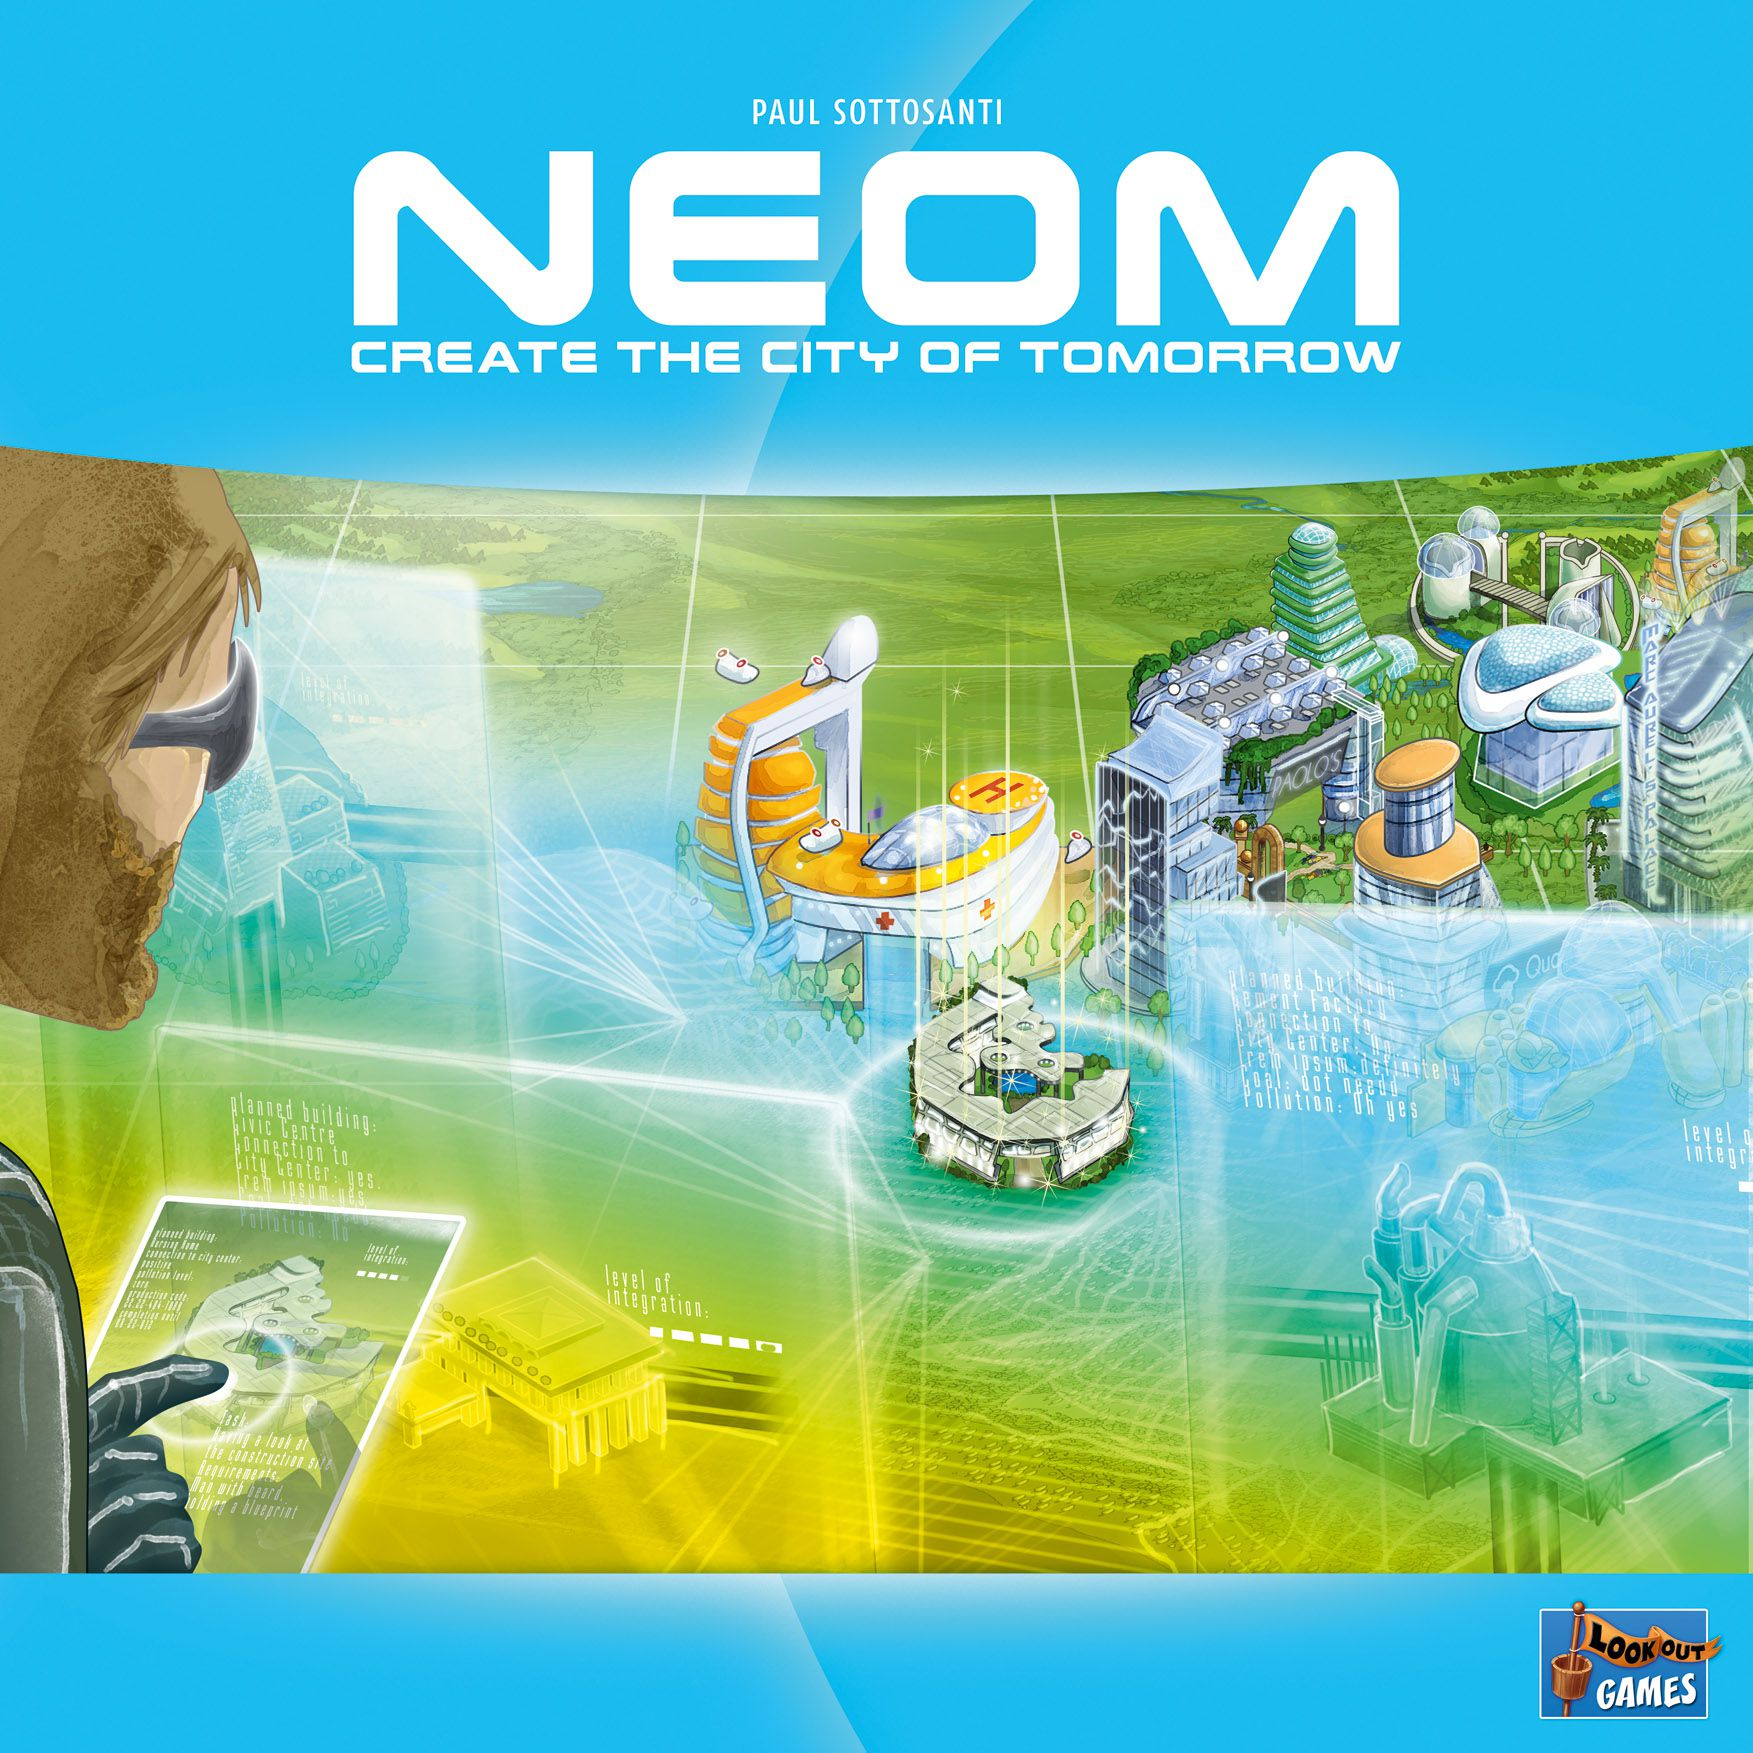 The box for Neom